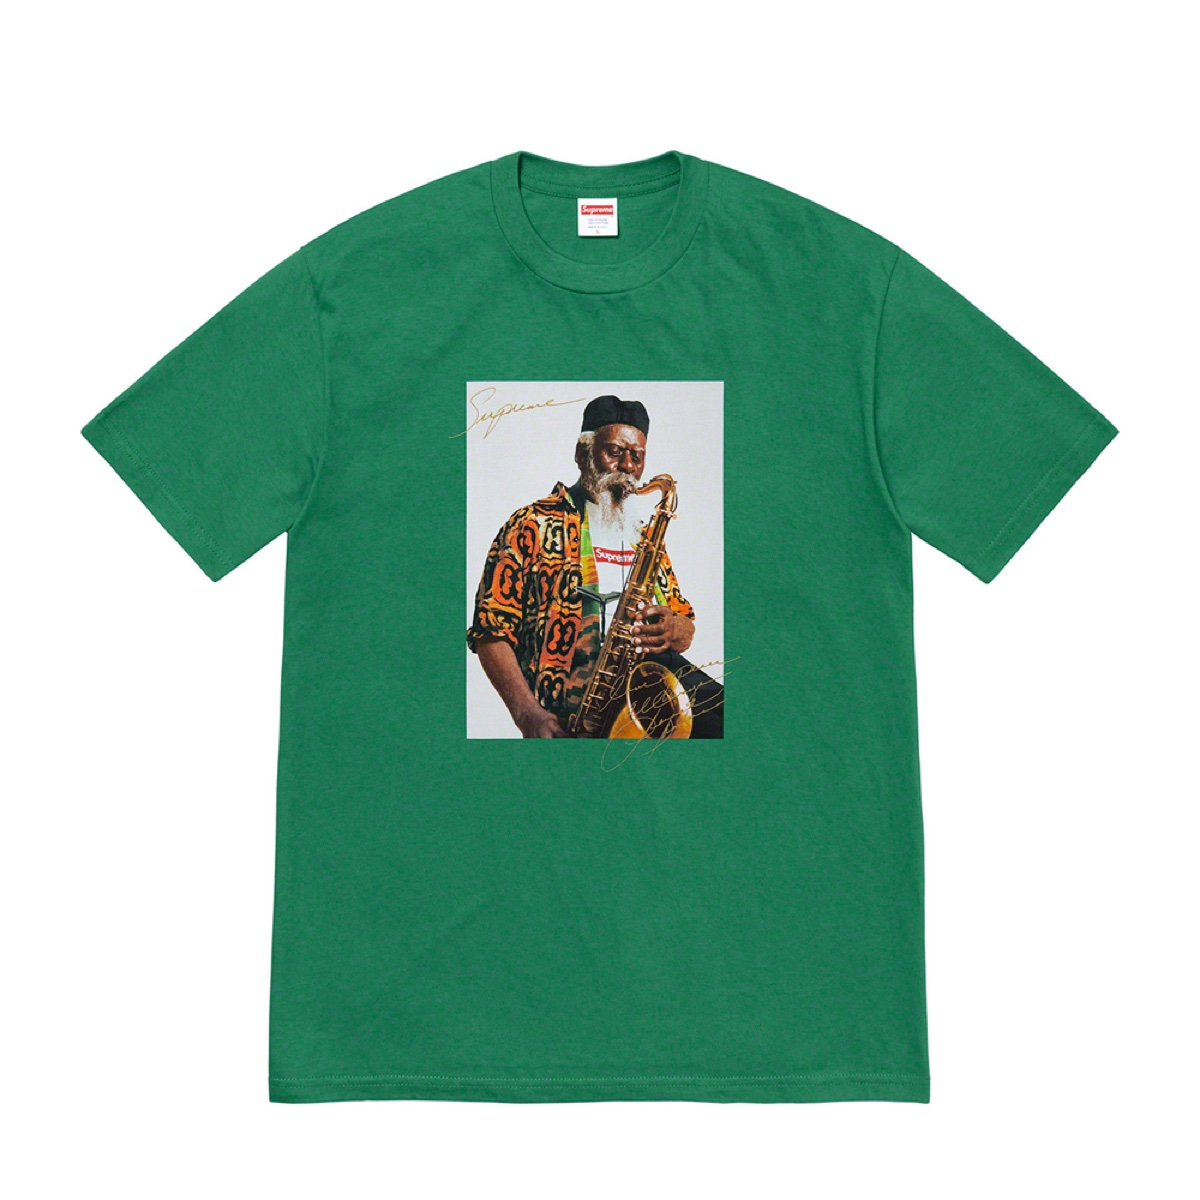 Supreme Pharoah Sanders Tee Light Pine